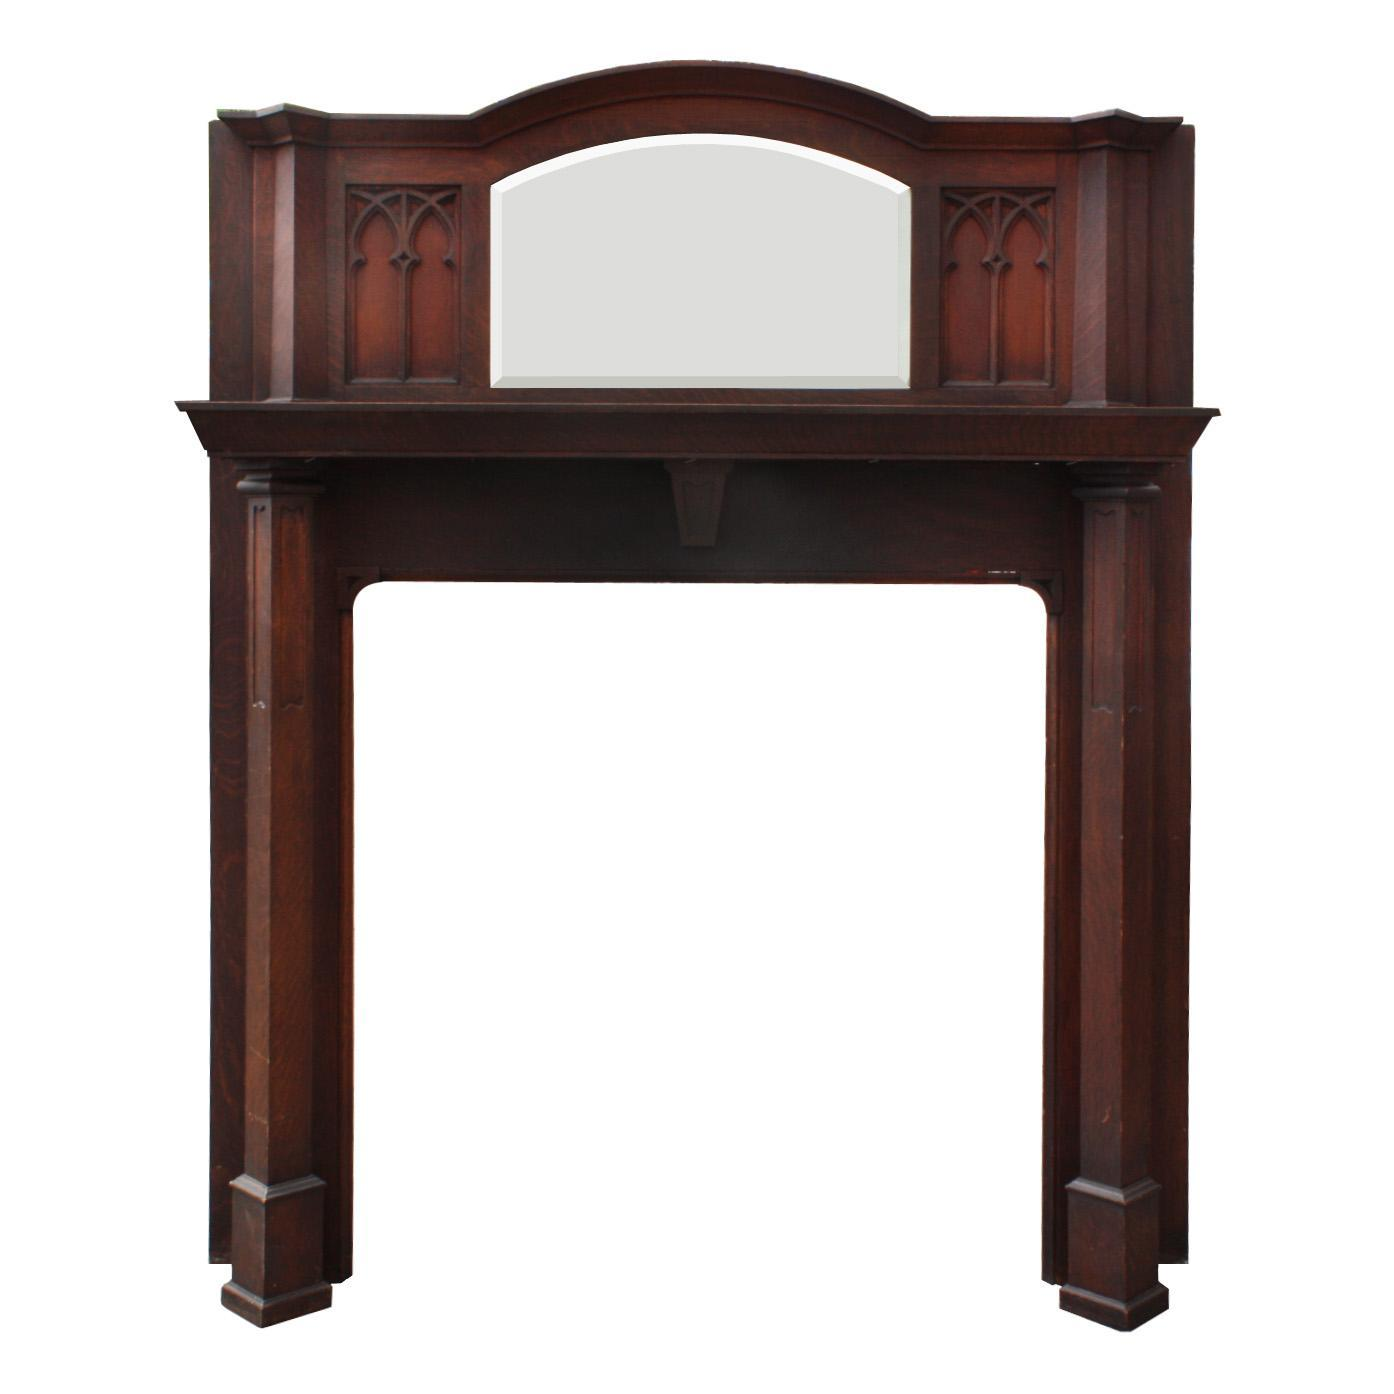 Antique gothic revival oak fireplace mantel with beveled for Mantel mirrors